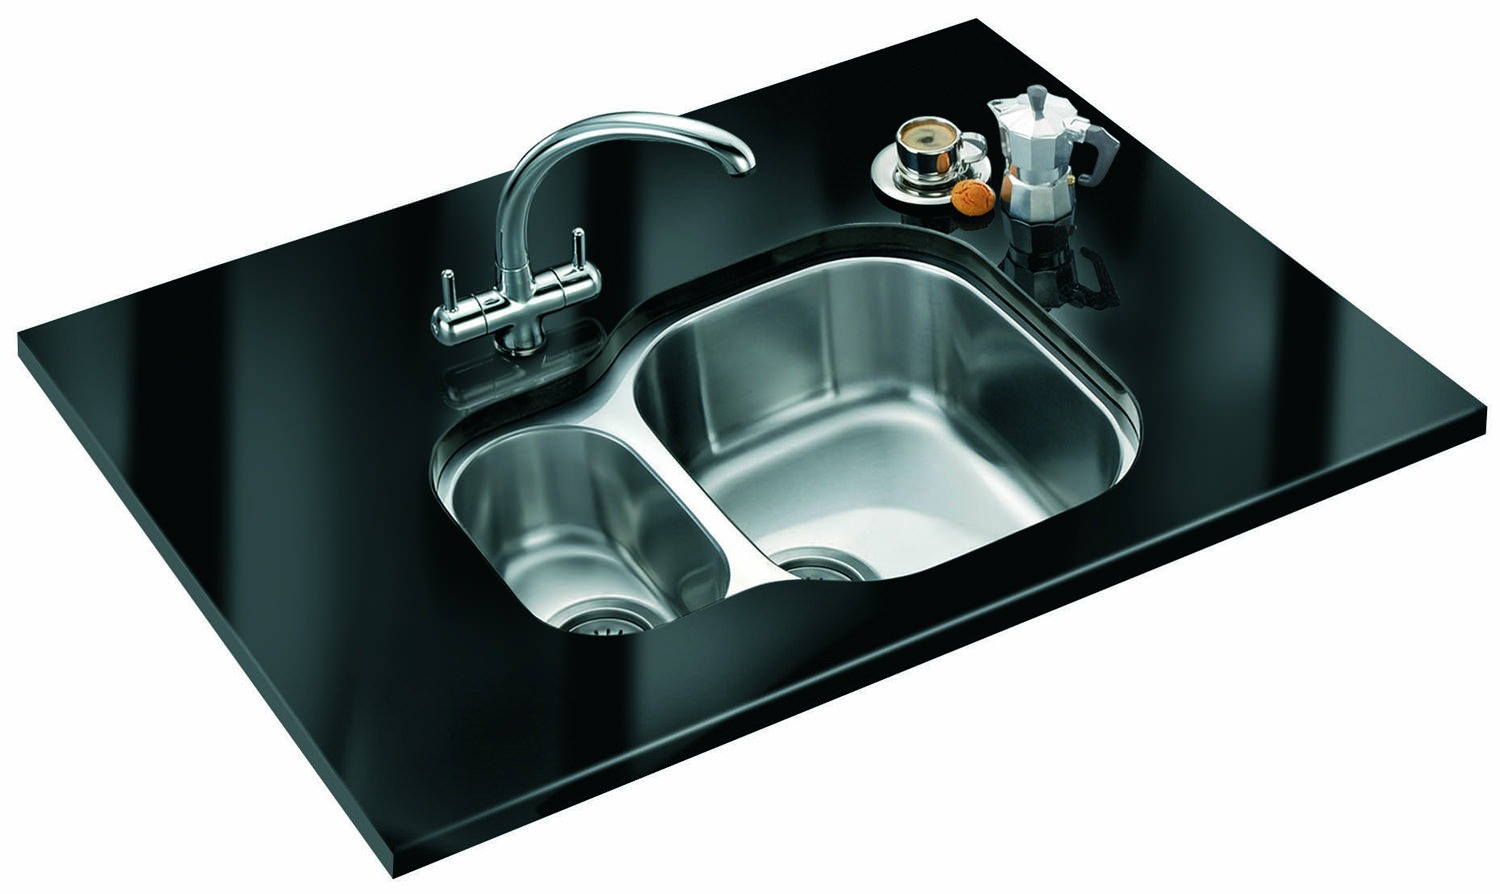 Franke Sinks Undermount Stainless Steel : ... Franke Compact Plus CPX 160P Stainless Steel 1.5 Bowl Undermount Sink